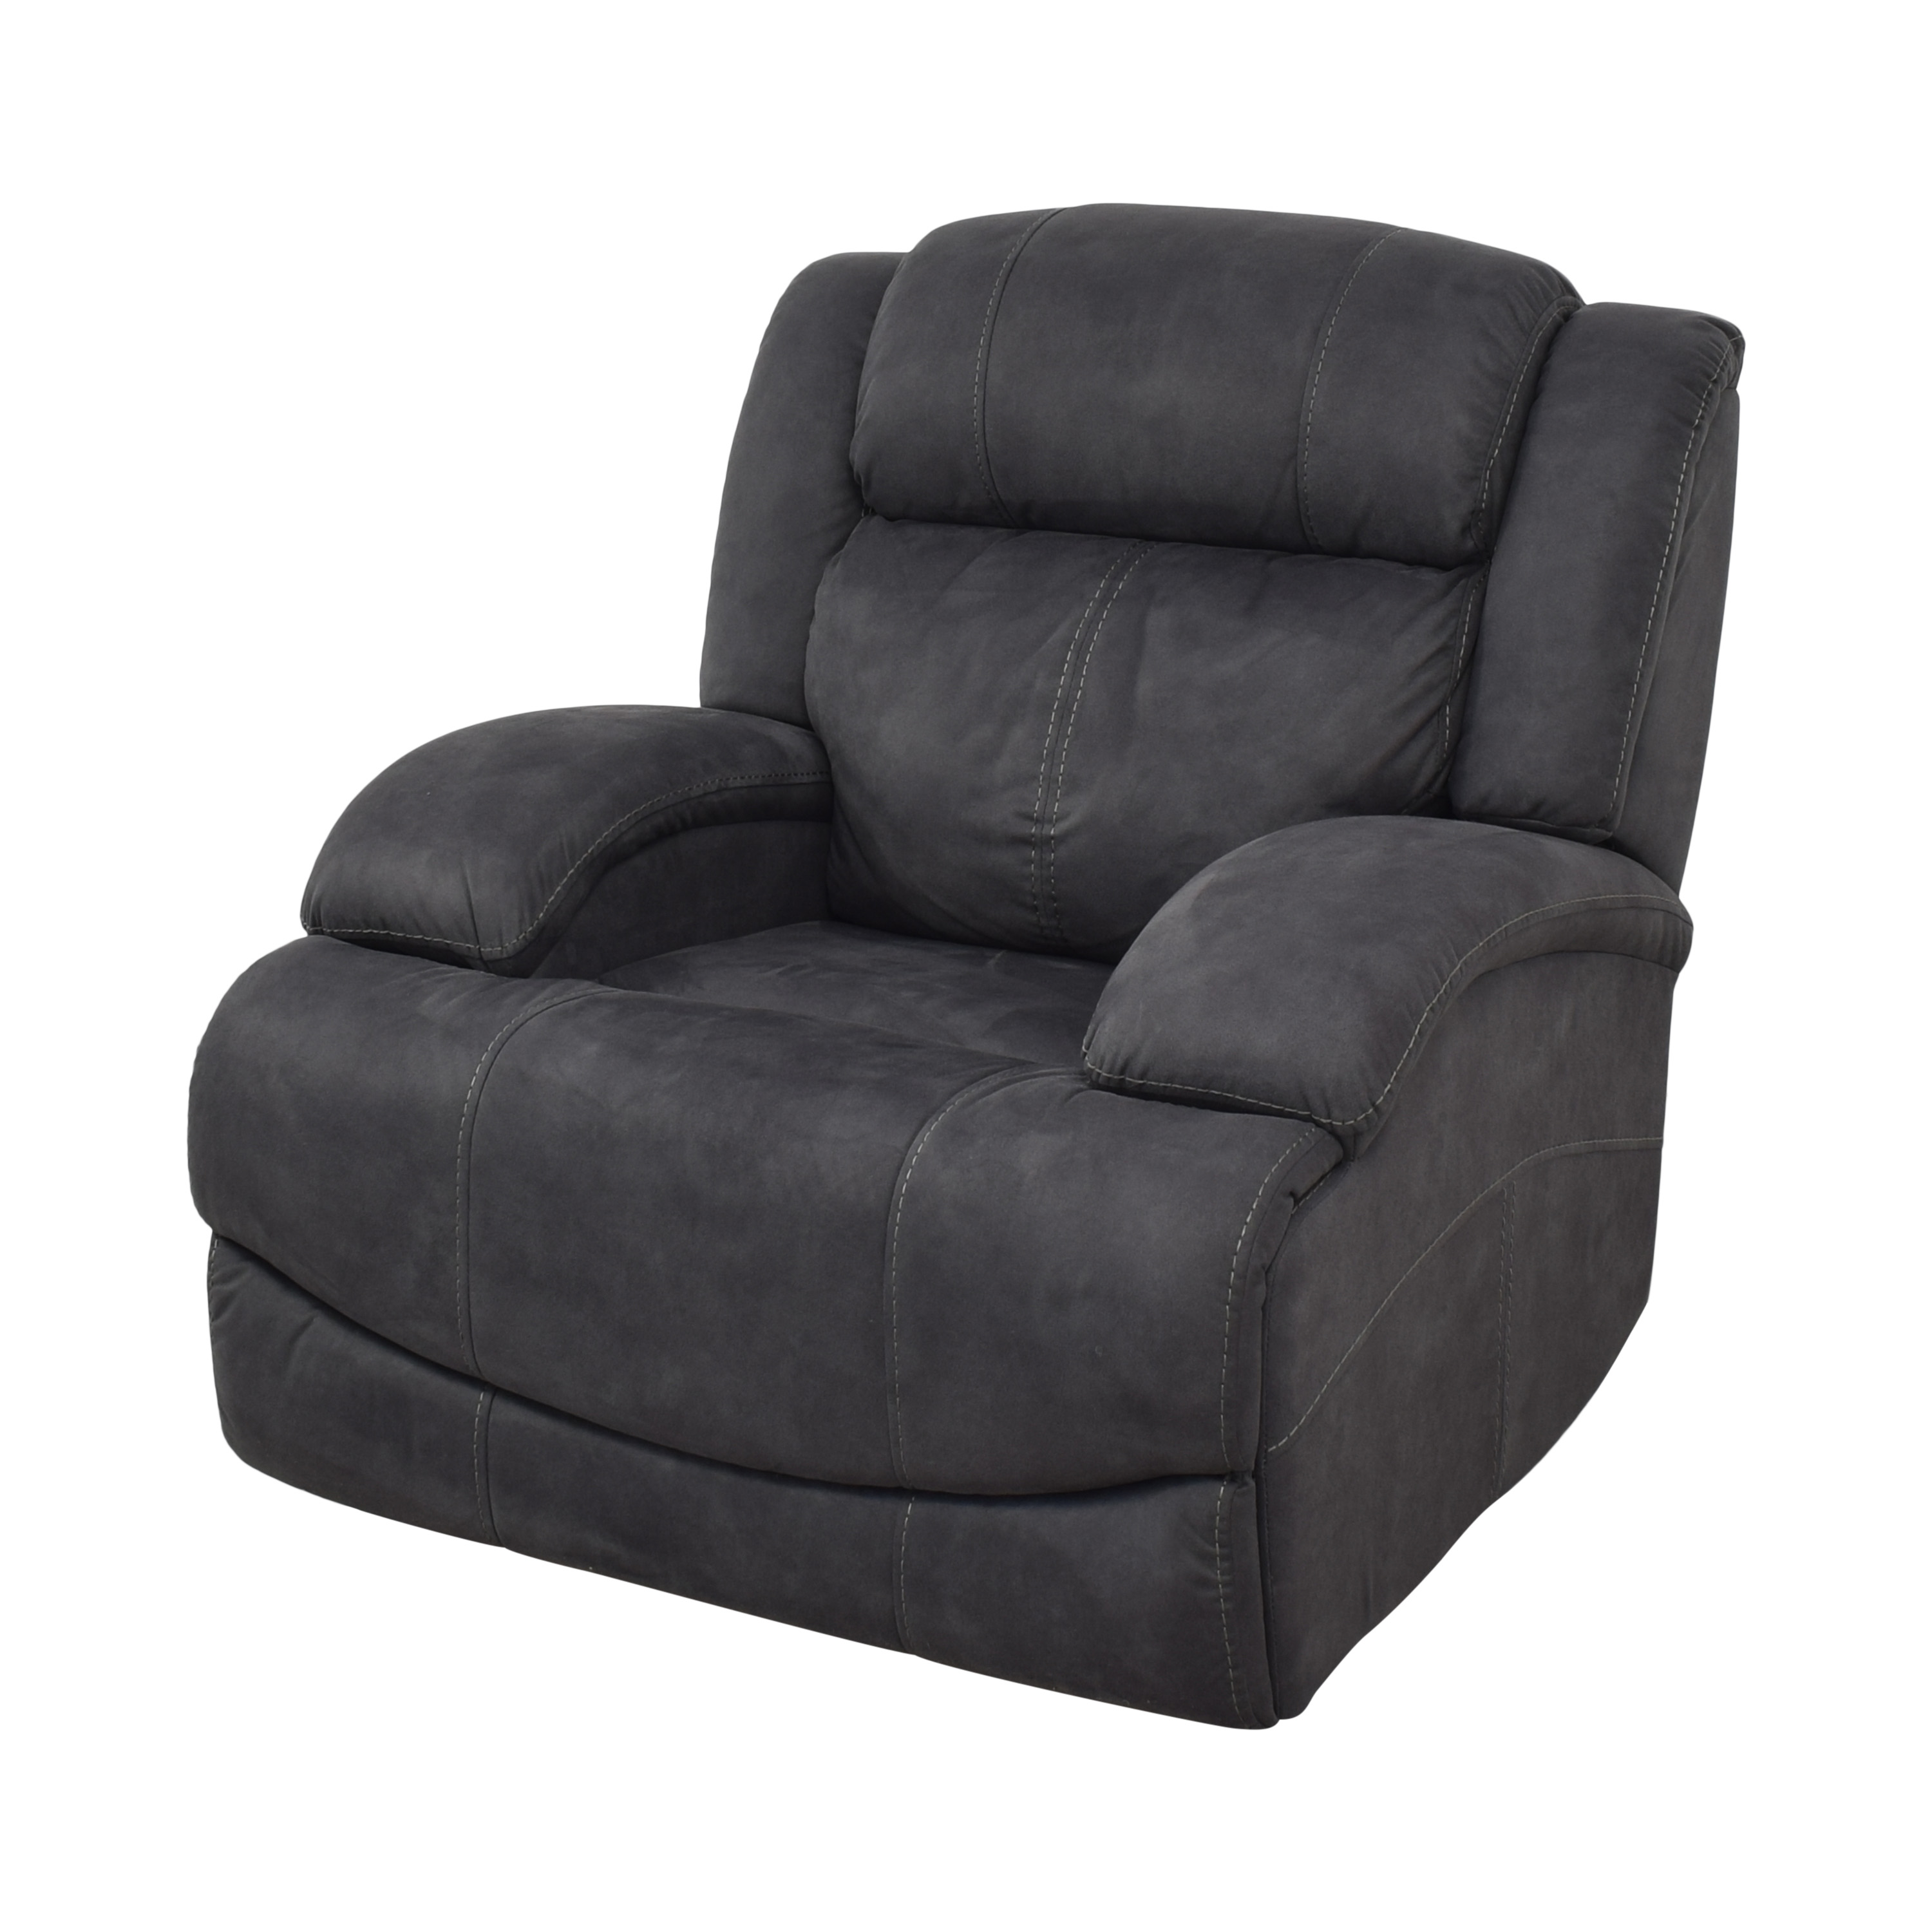 shop Raymour & Flanigan Quincey Glider Power Recliner Raymour & Flanigan Recliners